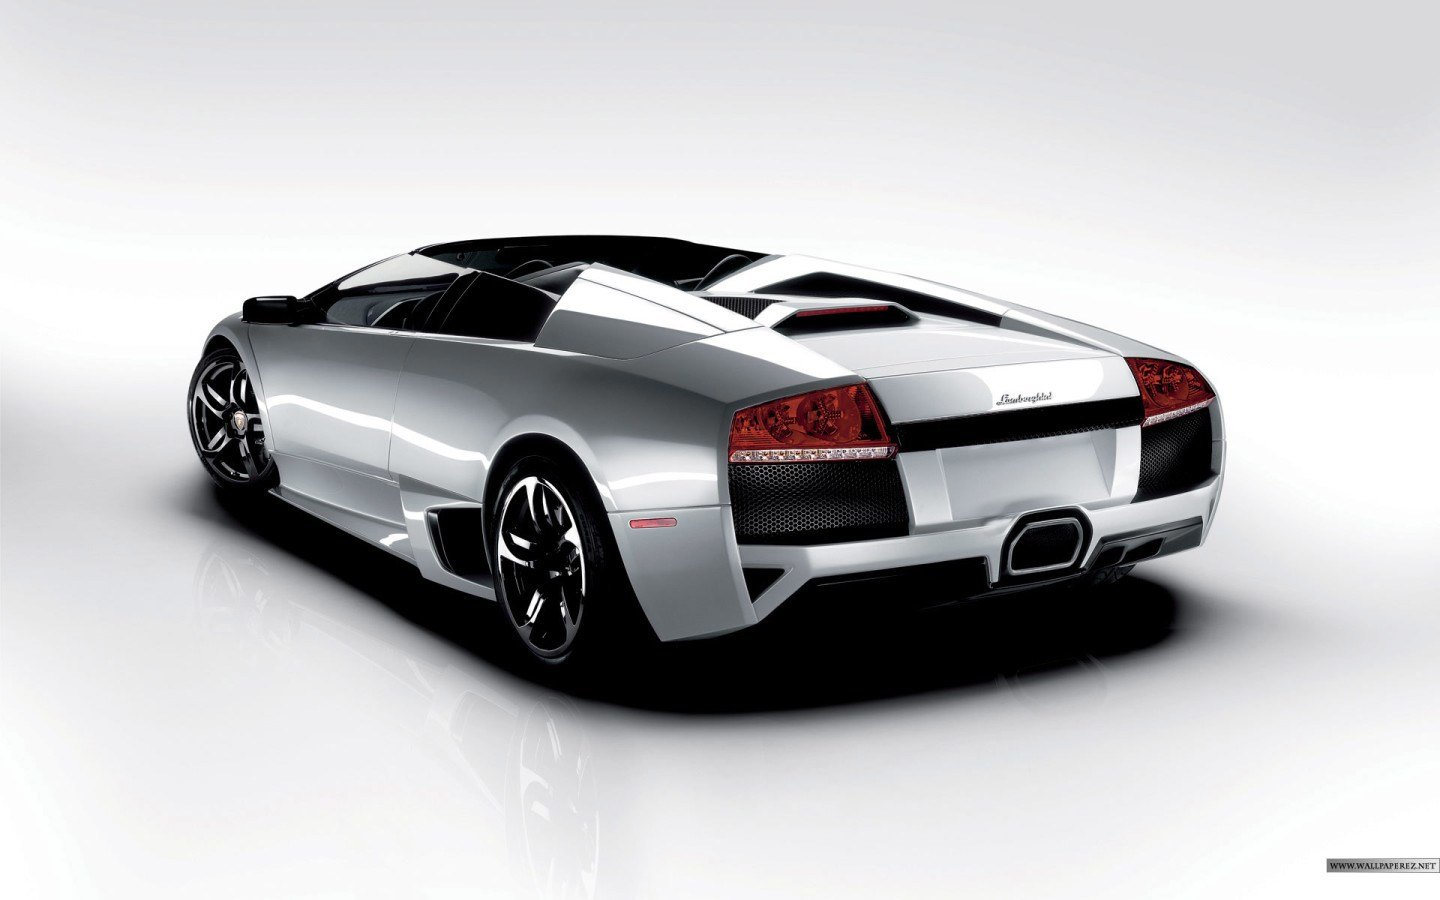 New Free Download Wallpapers Wallpaper Car Muscle Lamborghini On This Month